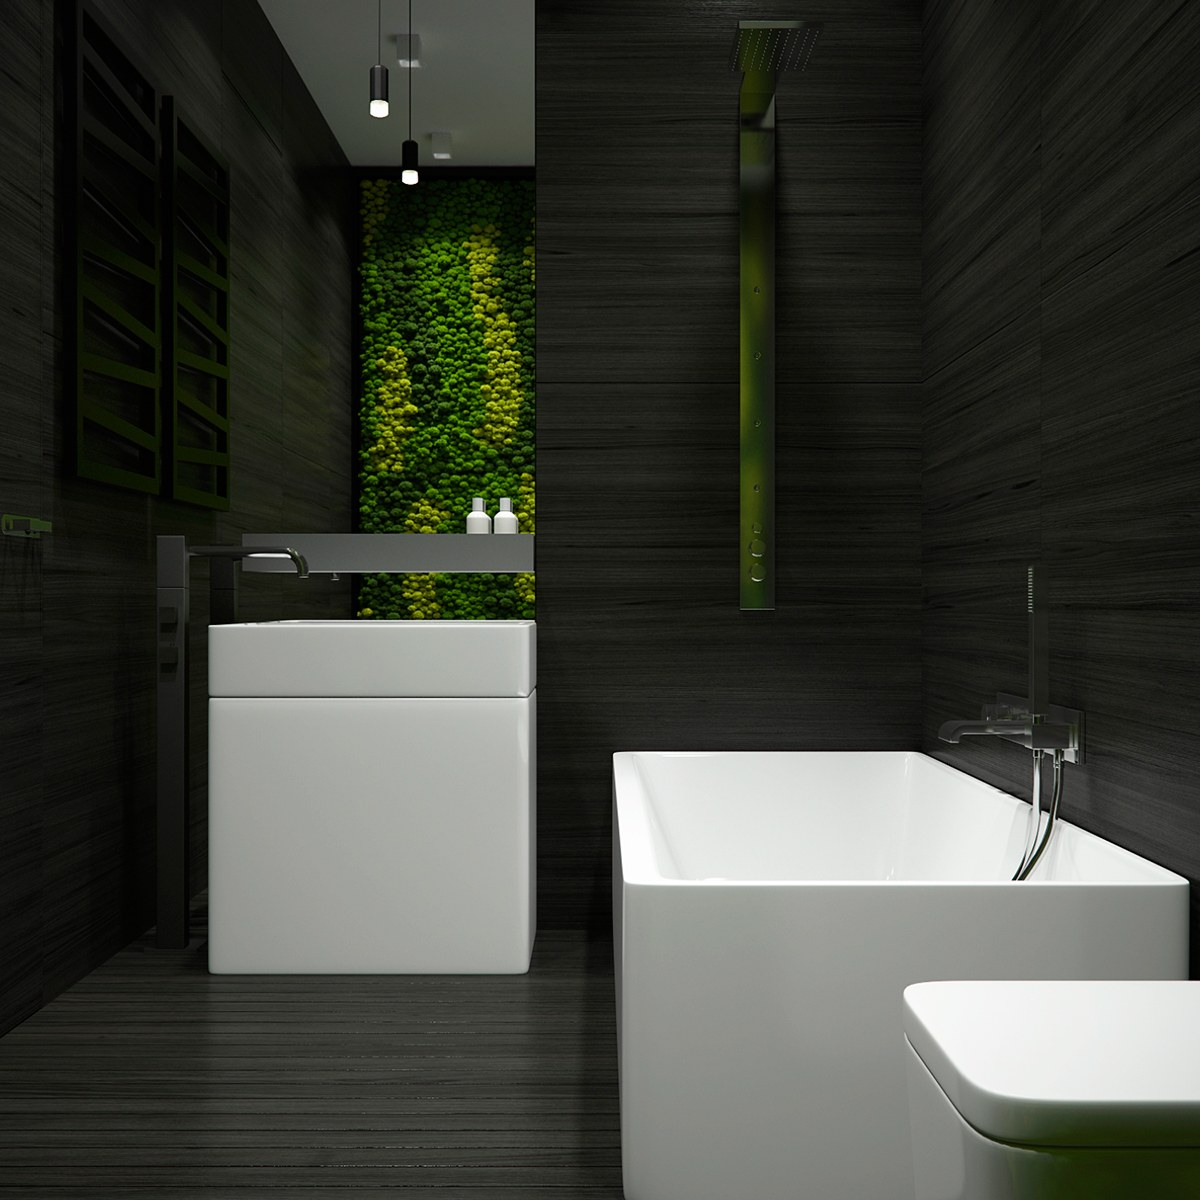 Dark Bathroom Tile Decorating Dark And White Bathroom Ideas With A Cool Design Which